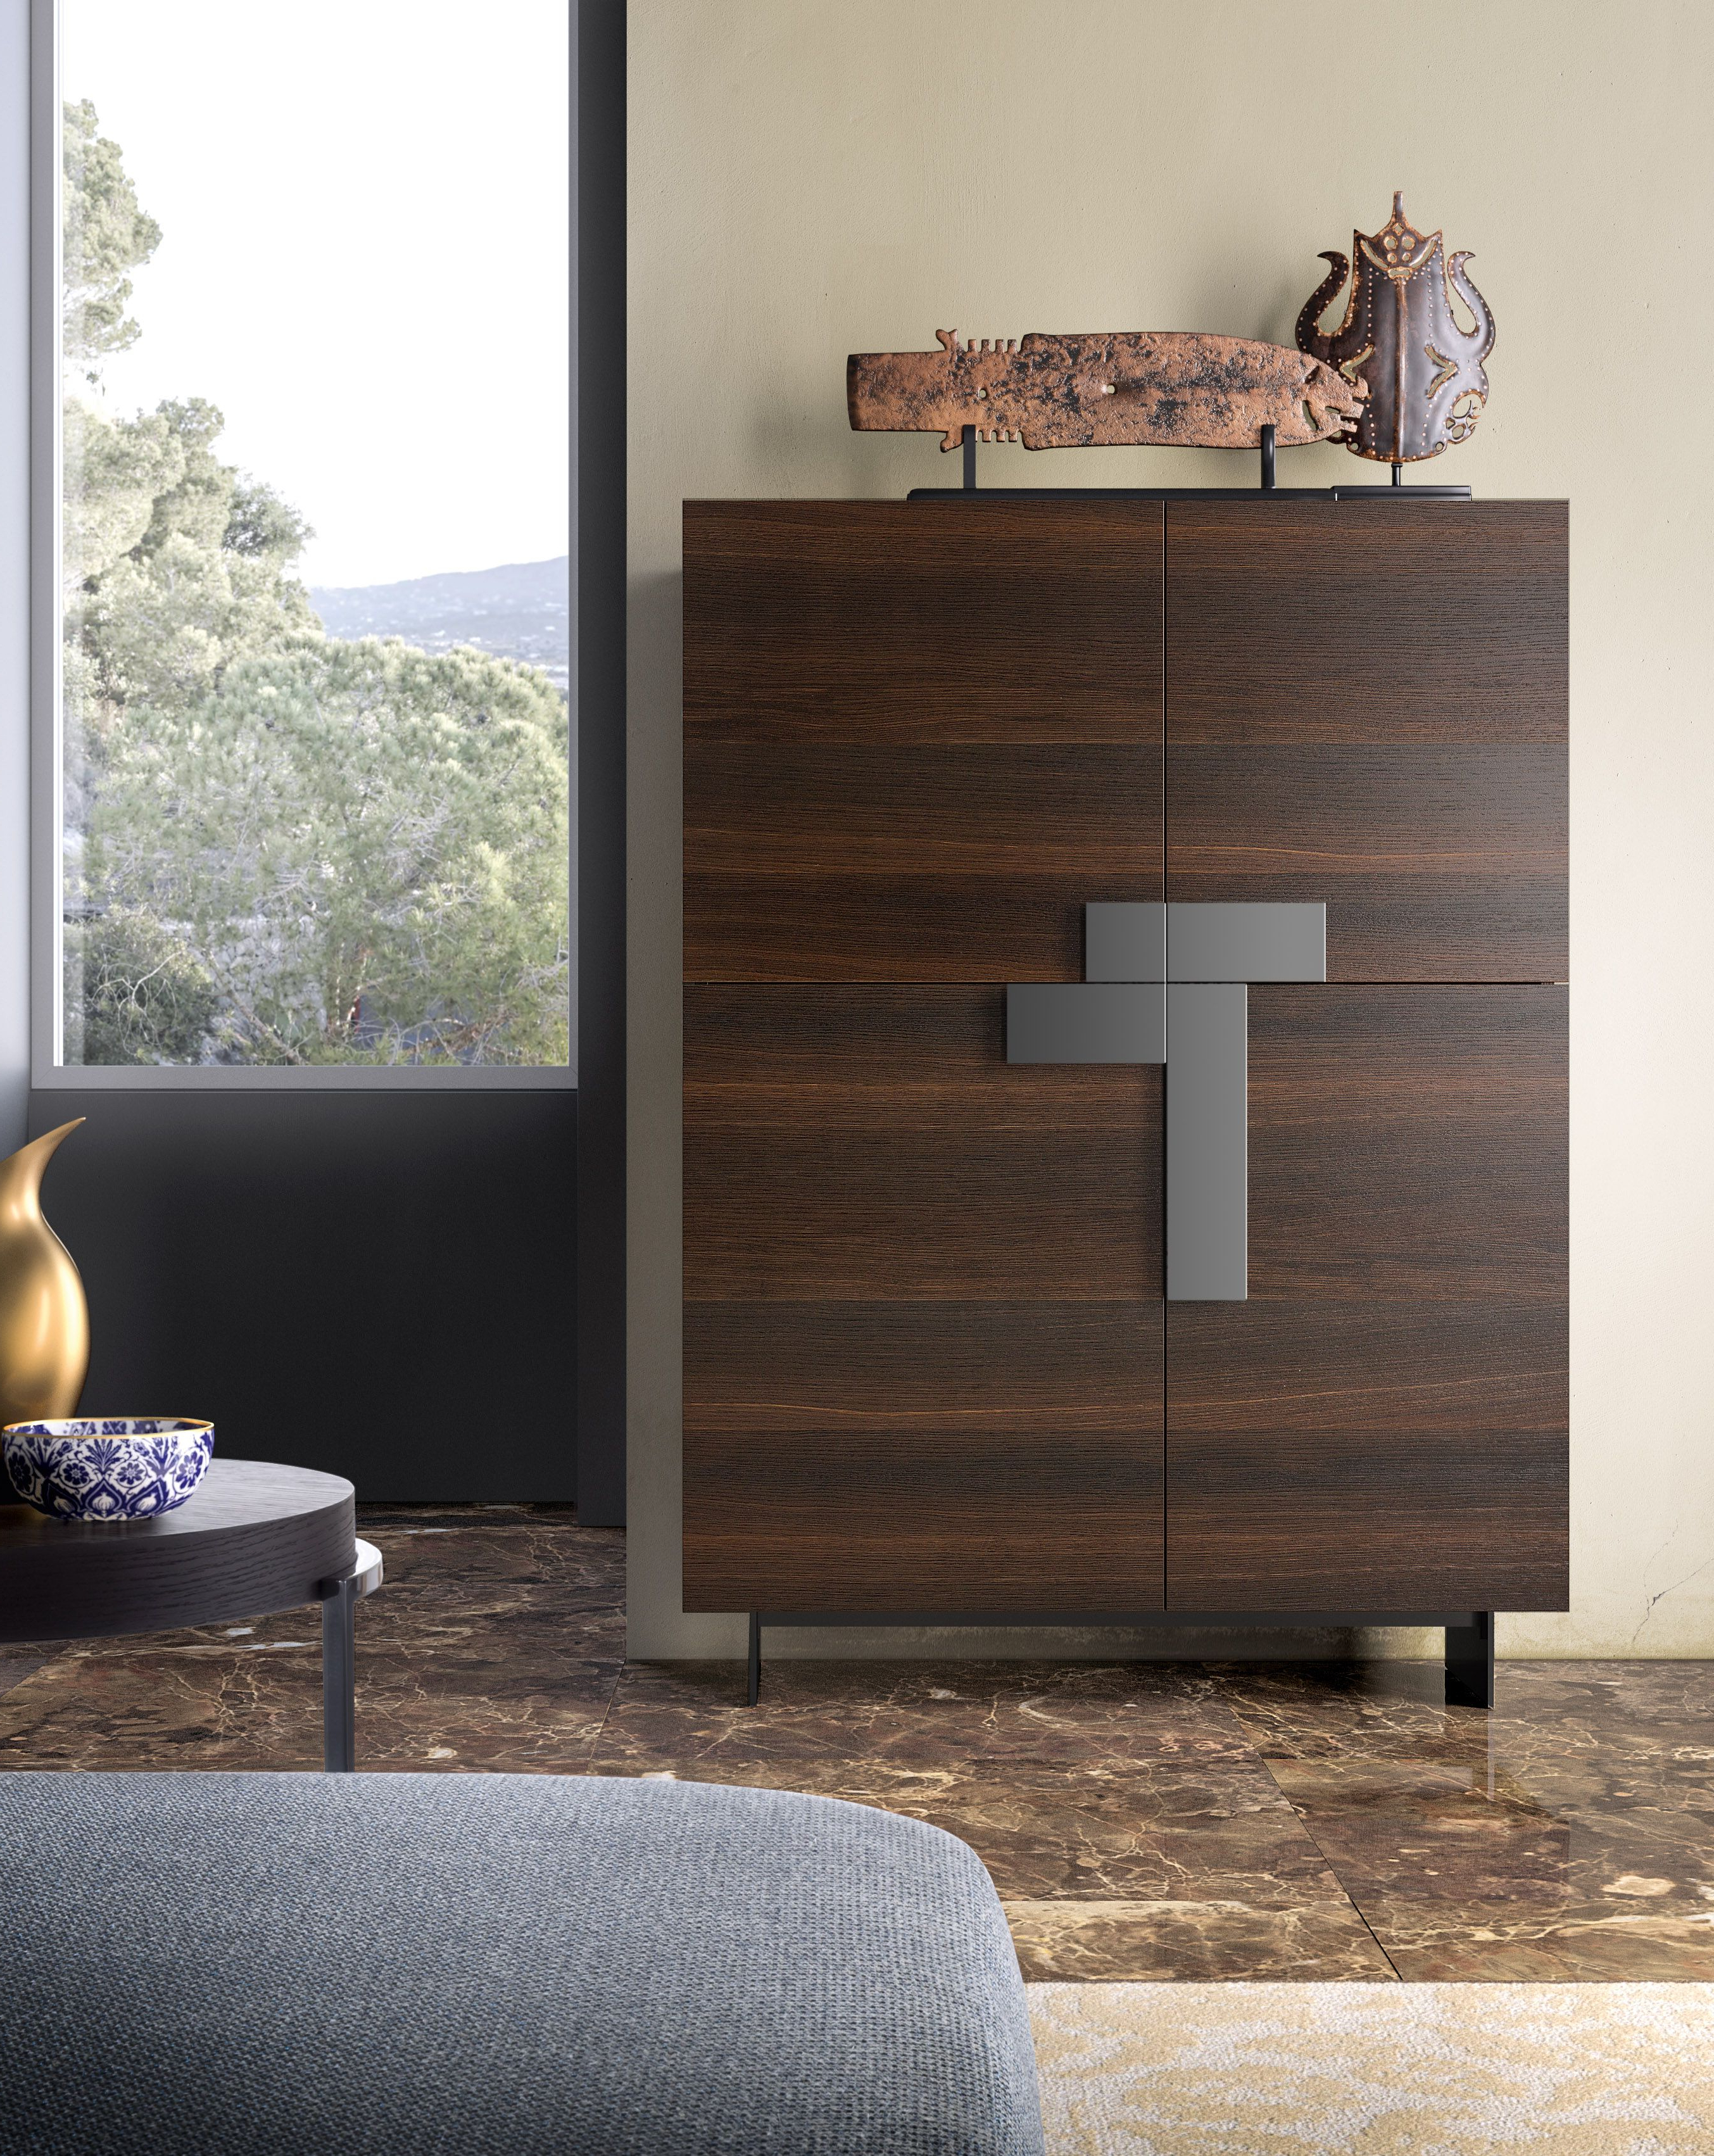 Most Recent Ginevra Sideboard With Burnt Oak Structure And Fronts, Titanium With Regard To Burnt Oak Wood Sideboards (View 11 of 20)